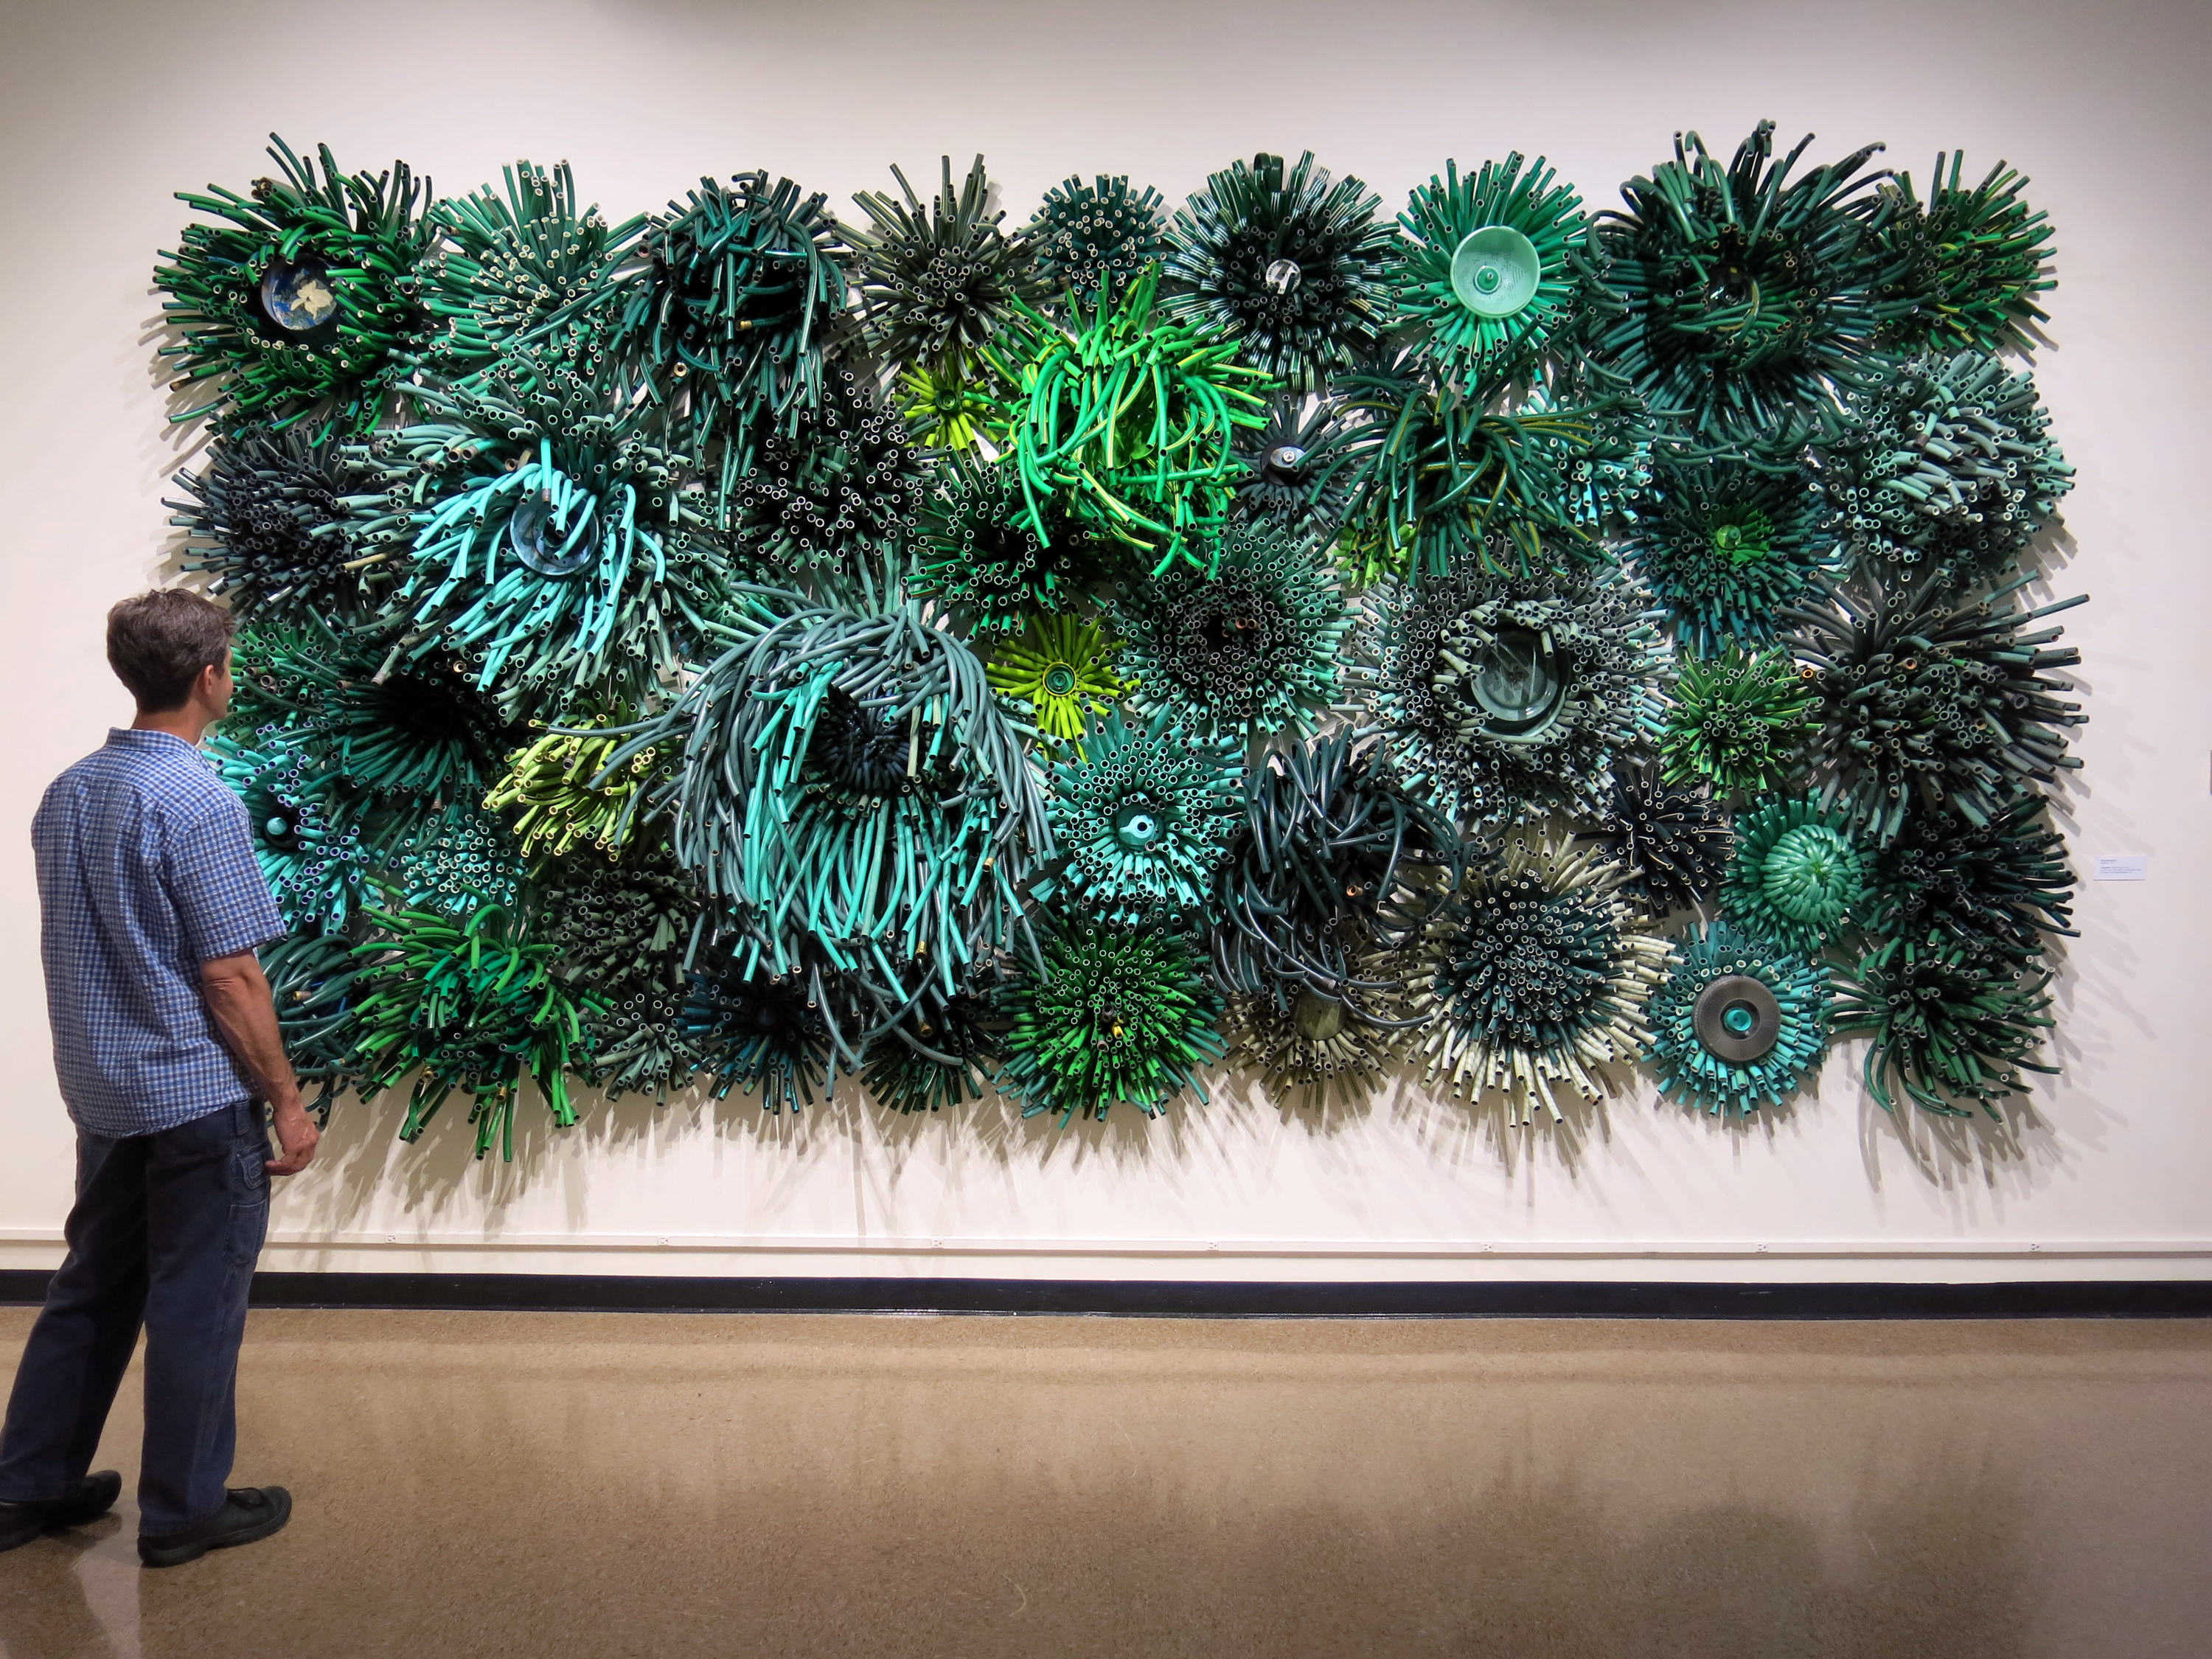 Michelle Stitzlein | JOVIBARBA - FYNBOS SERIES | garden hose mini blinds, wire, cable, plastic... | 96 x 192 x 18"